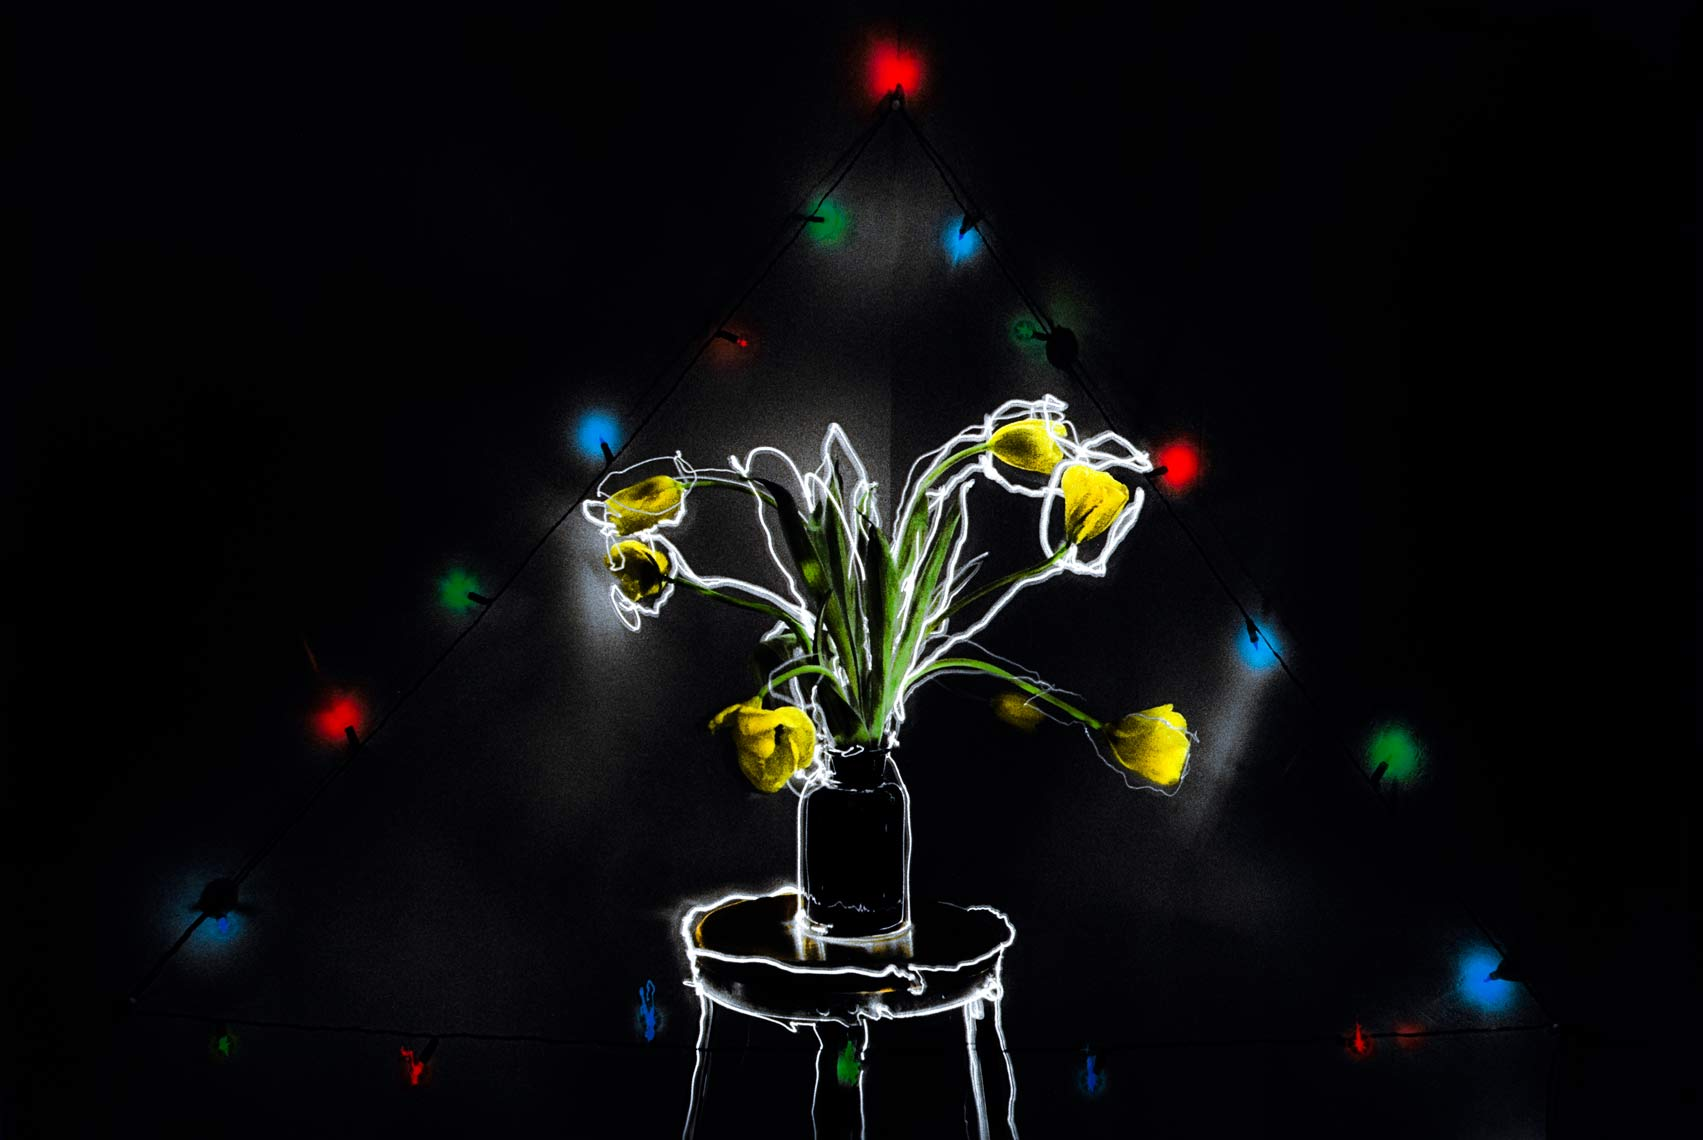 David Lebe; Tulips Colored Lights, 1982, still life, hand colored photograph